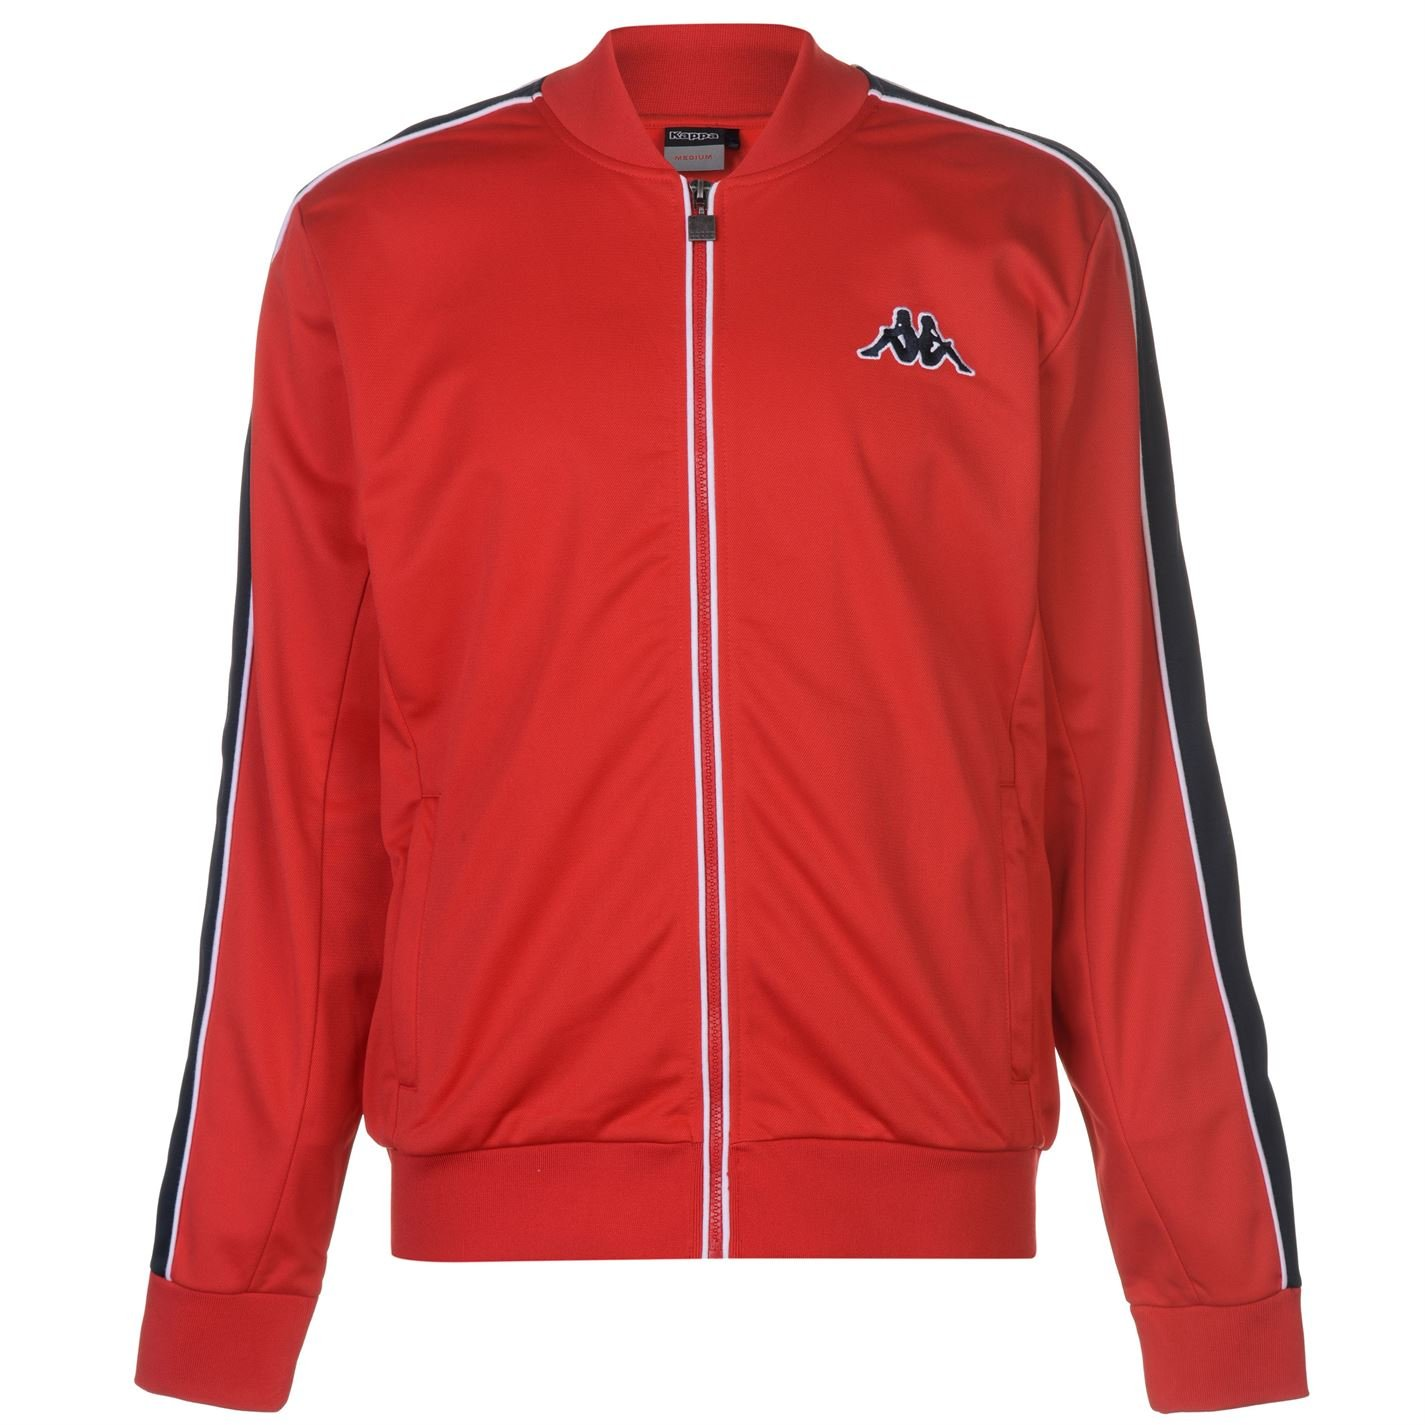 Kappa Mens Tri Colour Jacket Tracksuit Top Coat Long Sleeve Lightweight Zip Full Red Small